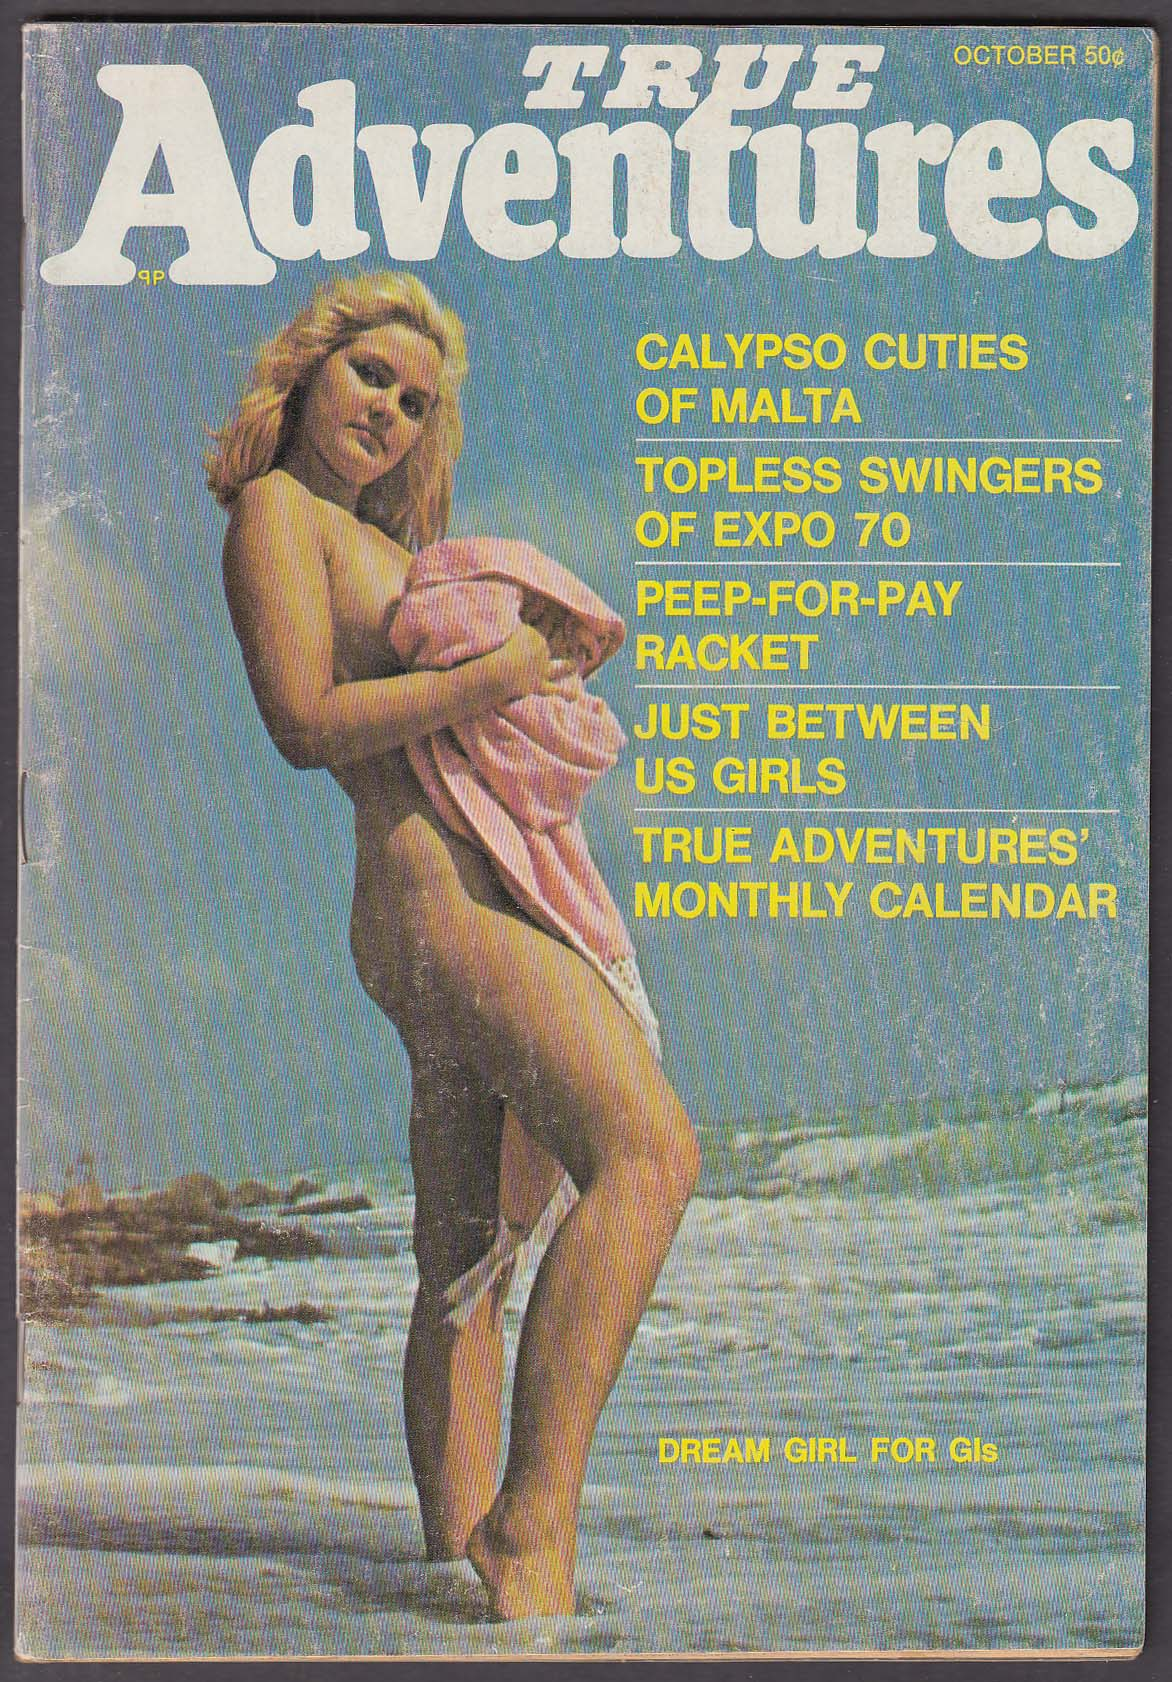 TRUE ADVENTURES Men's Magazine nude pictorials ++ 10 1970